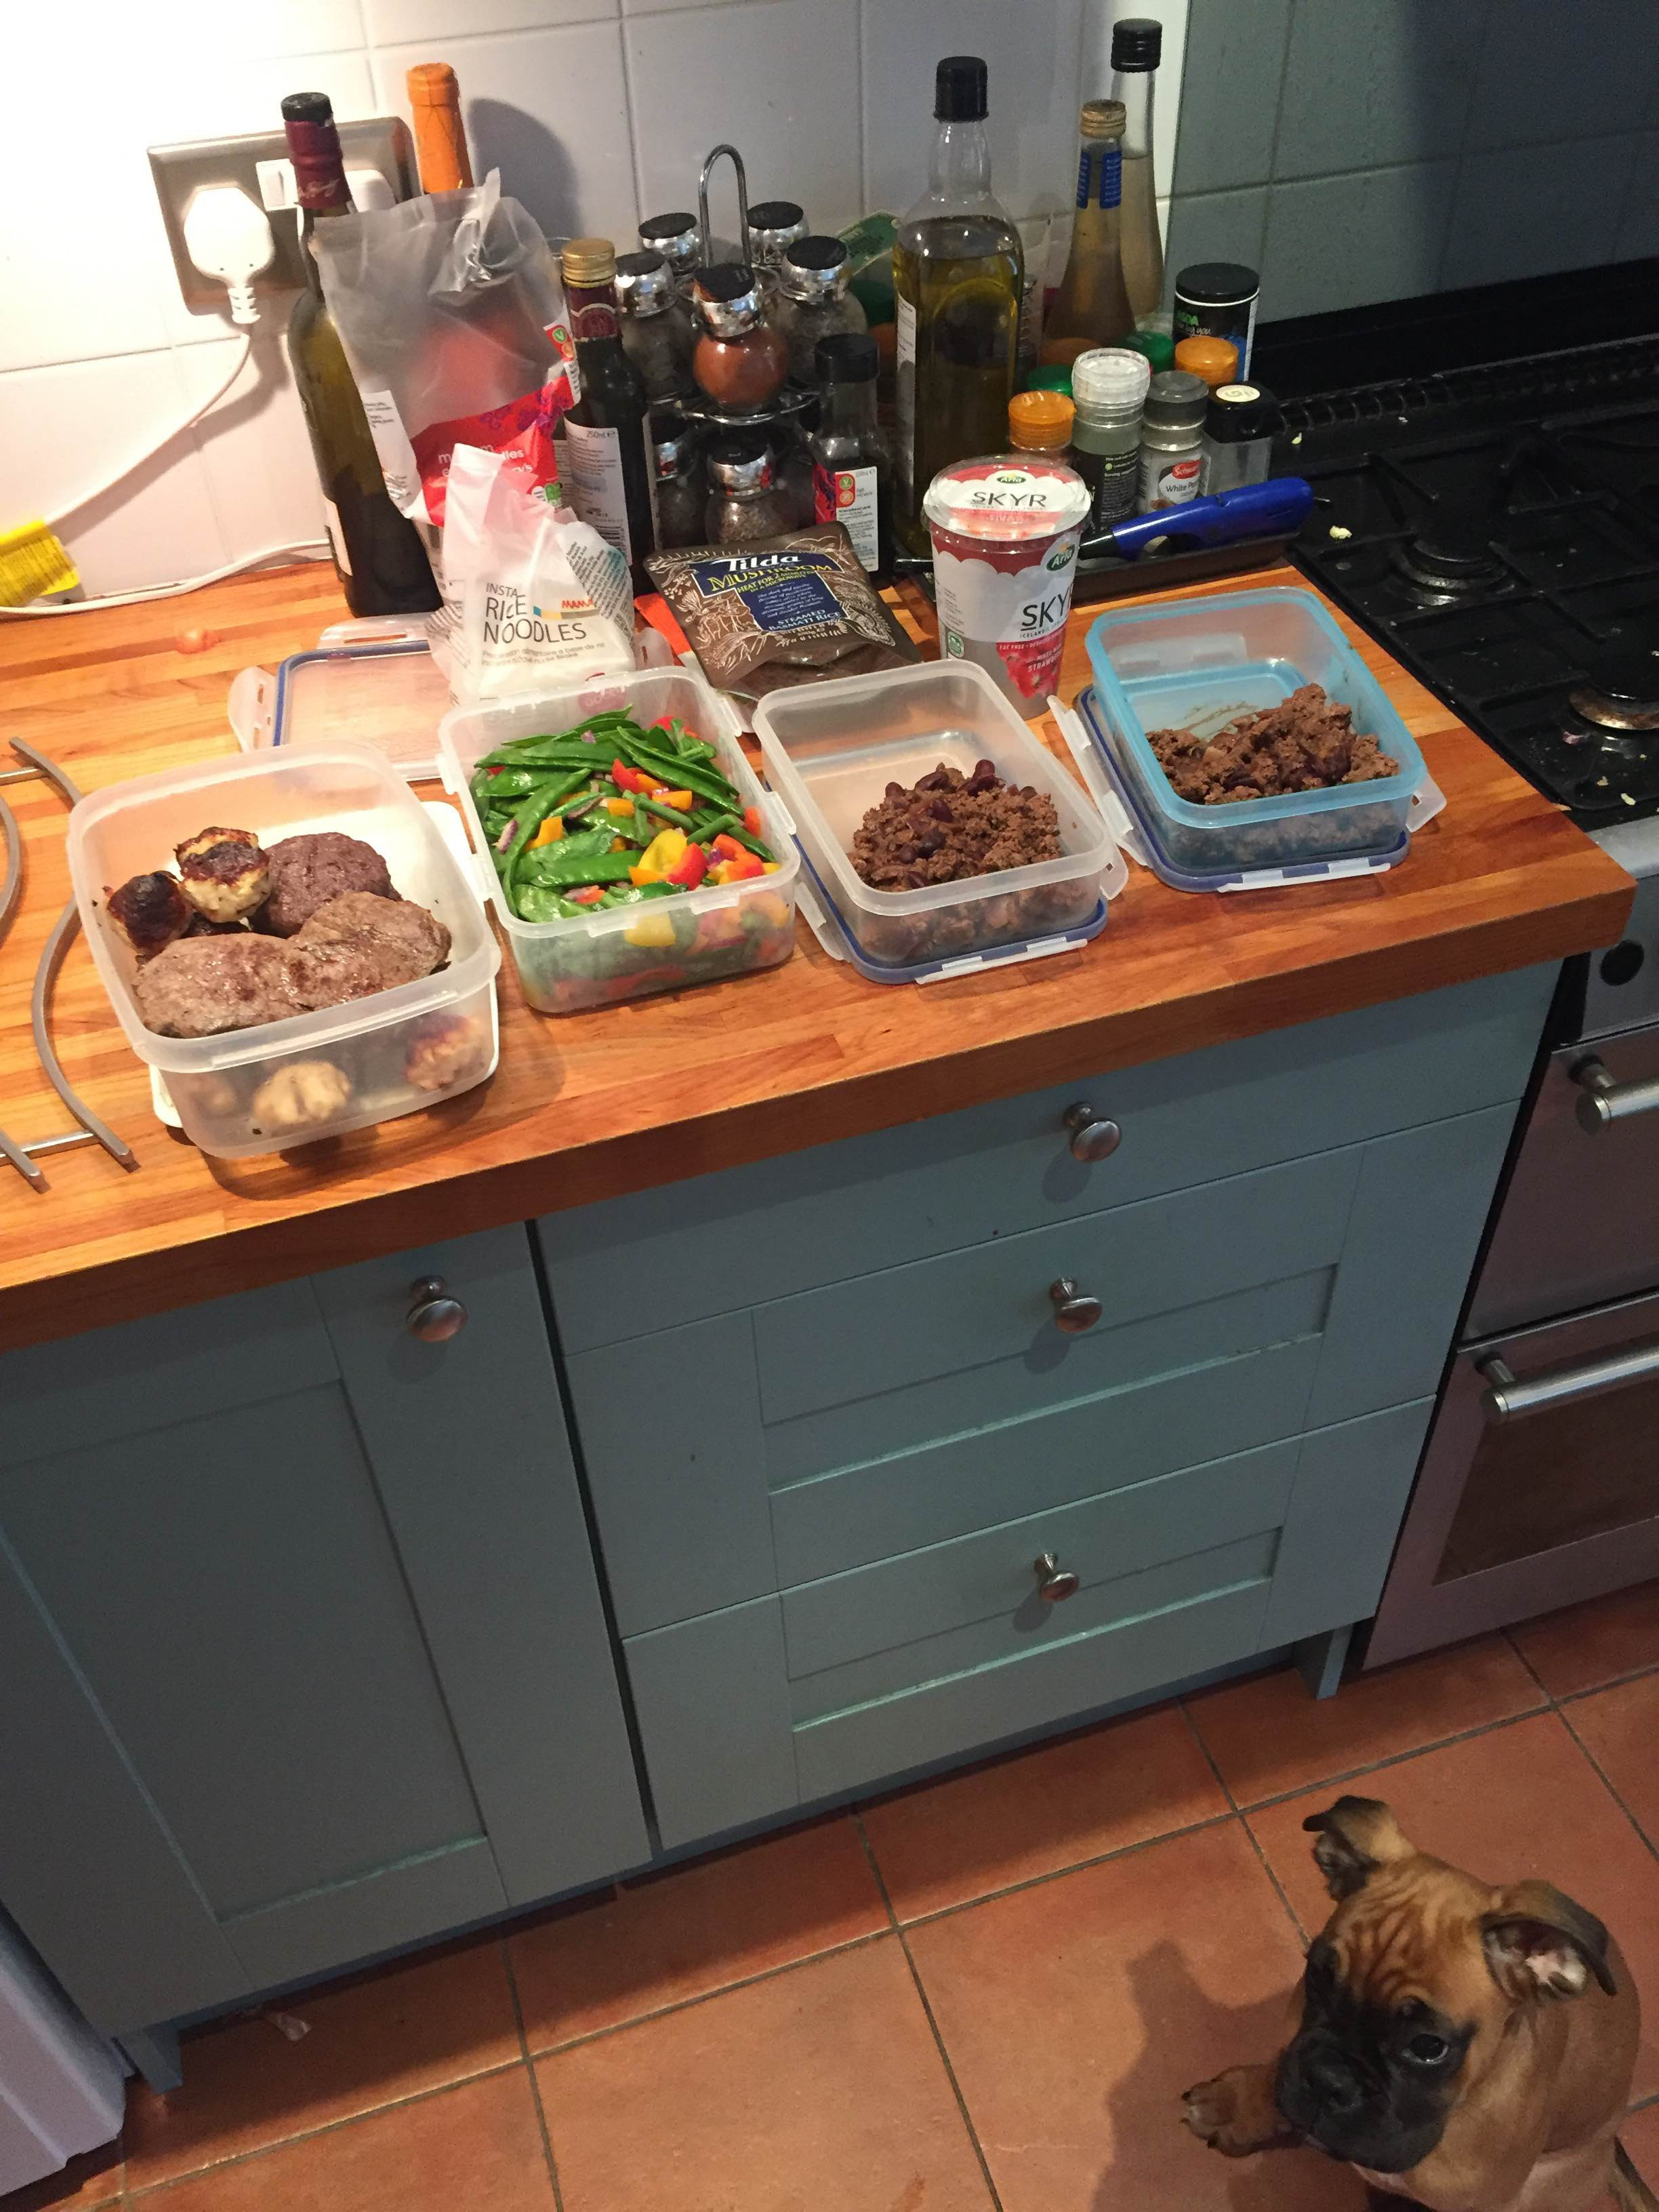 Set your week up right! Meal Prep.